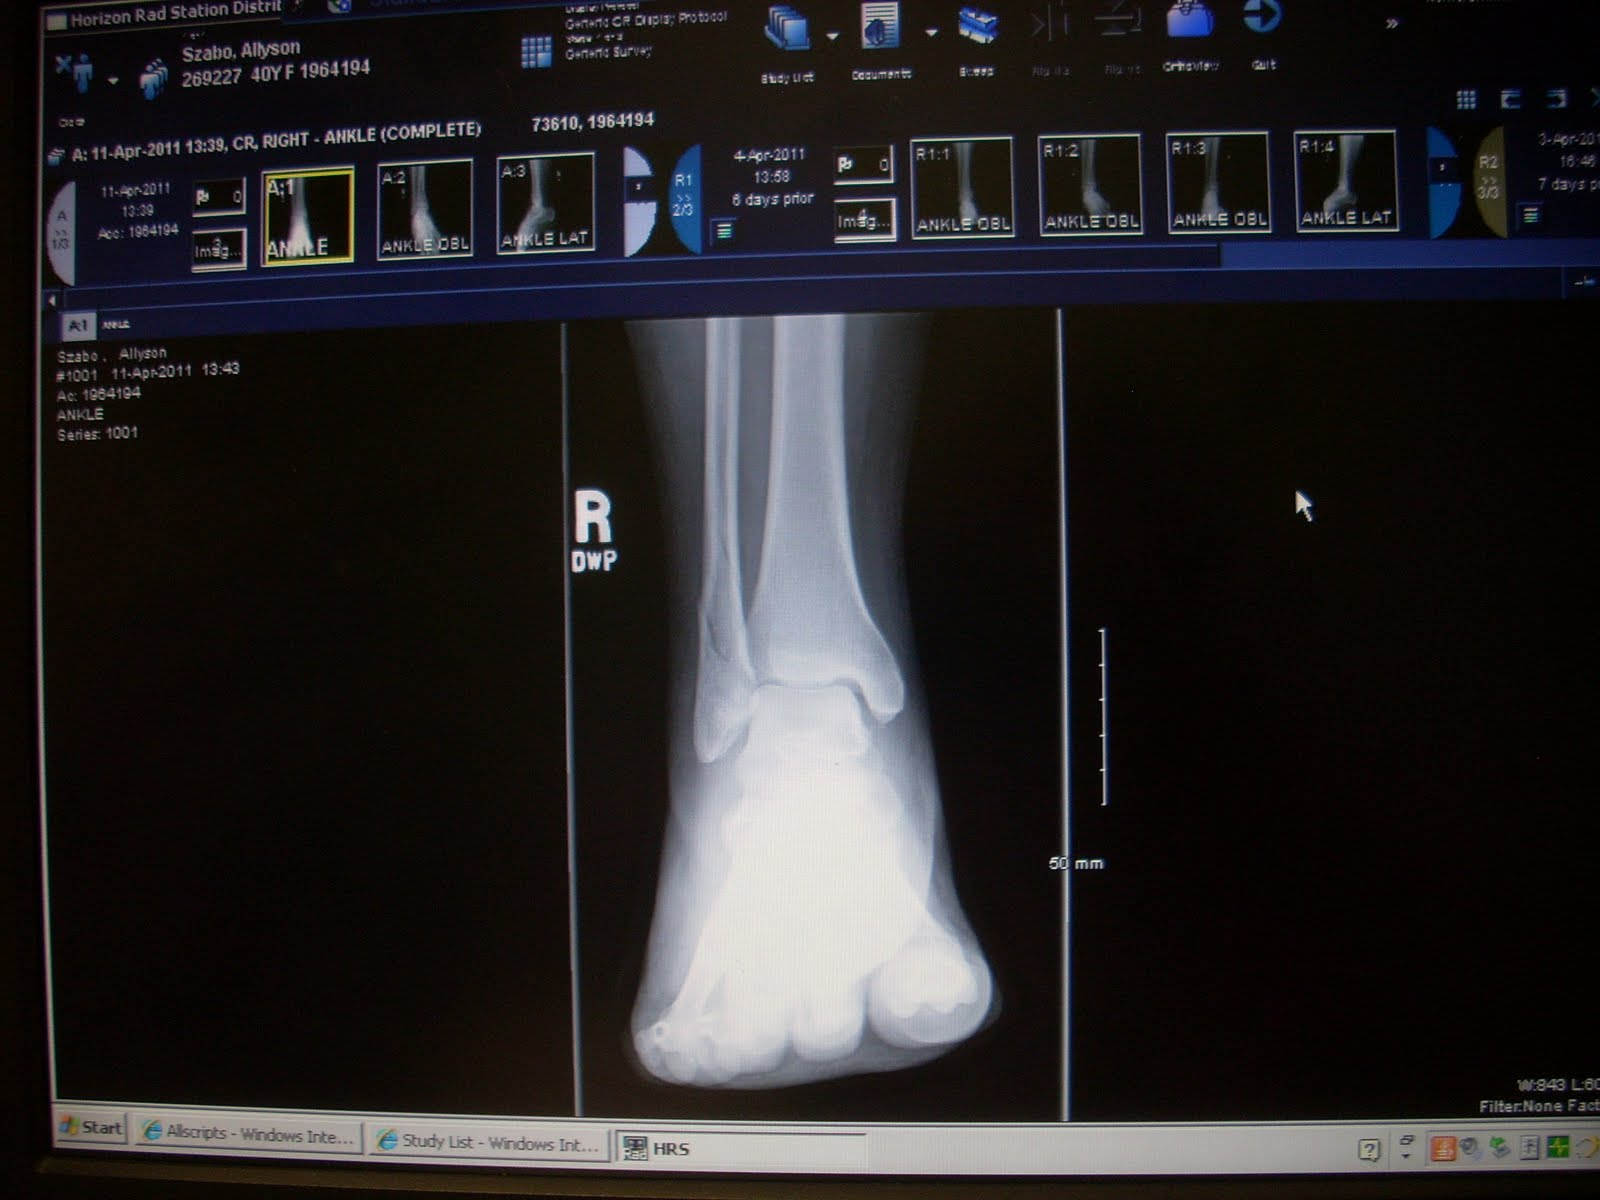 you can clearly see the spiral fracture in the fibula-3.bp.blogspot.com